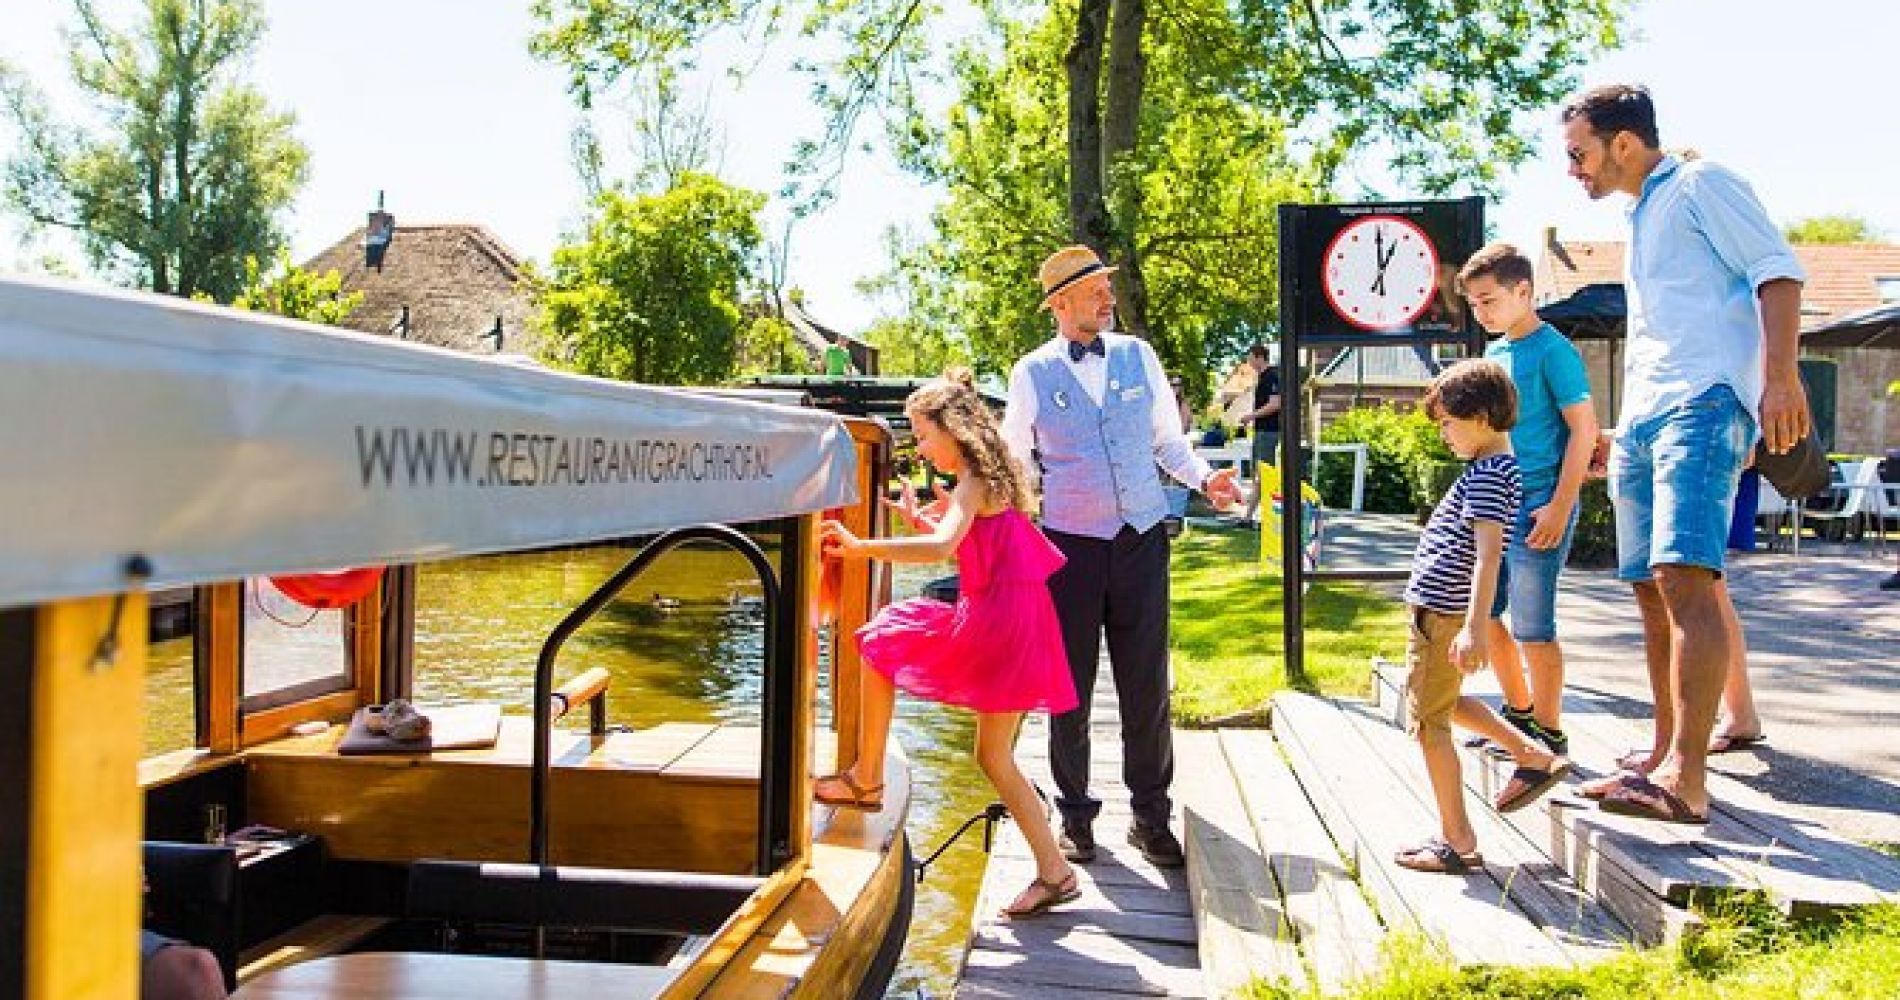 Giethoorn & Enclosing Dike Full-Day Tour from Amsterdam